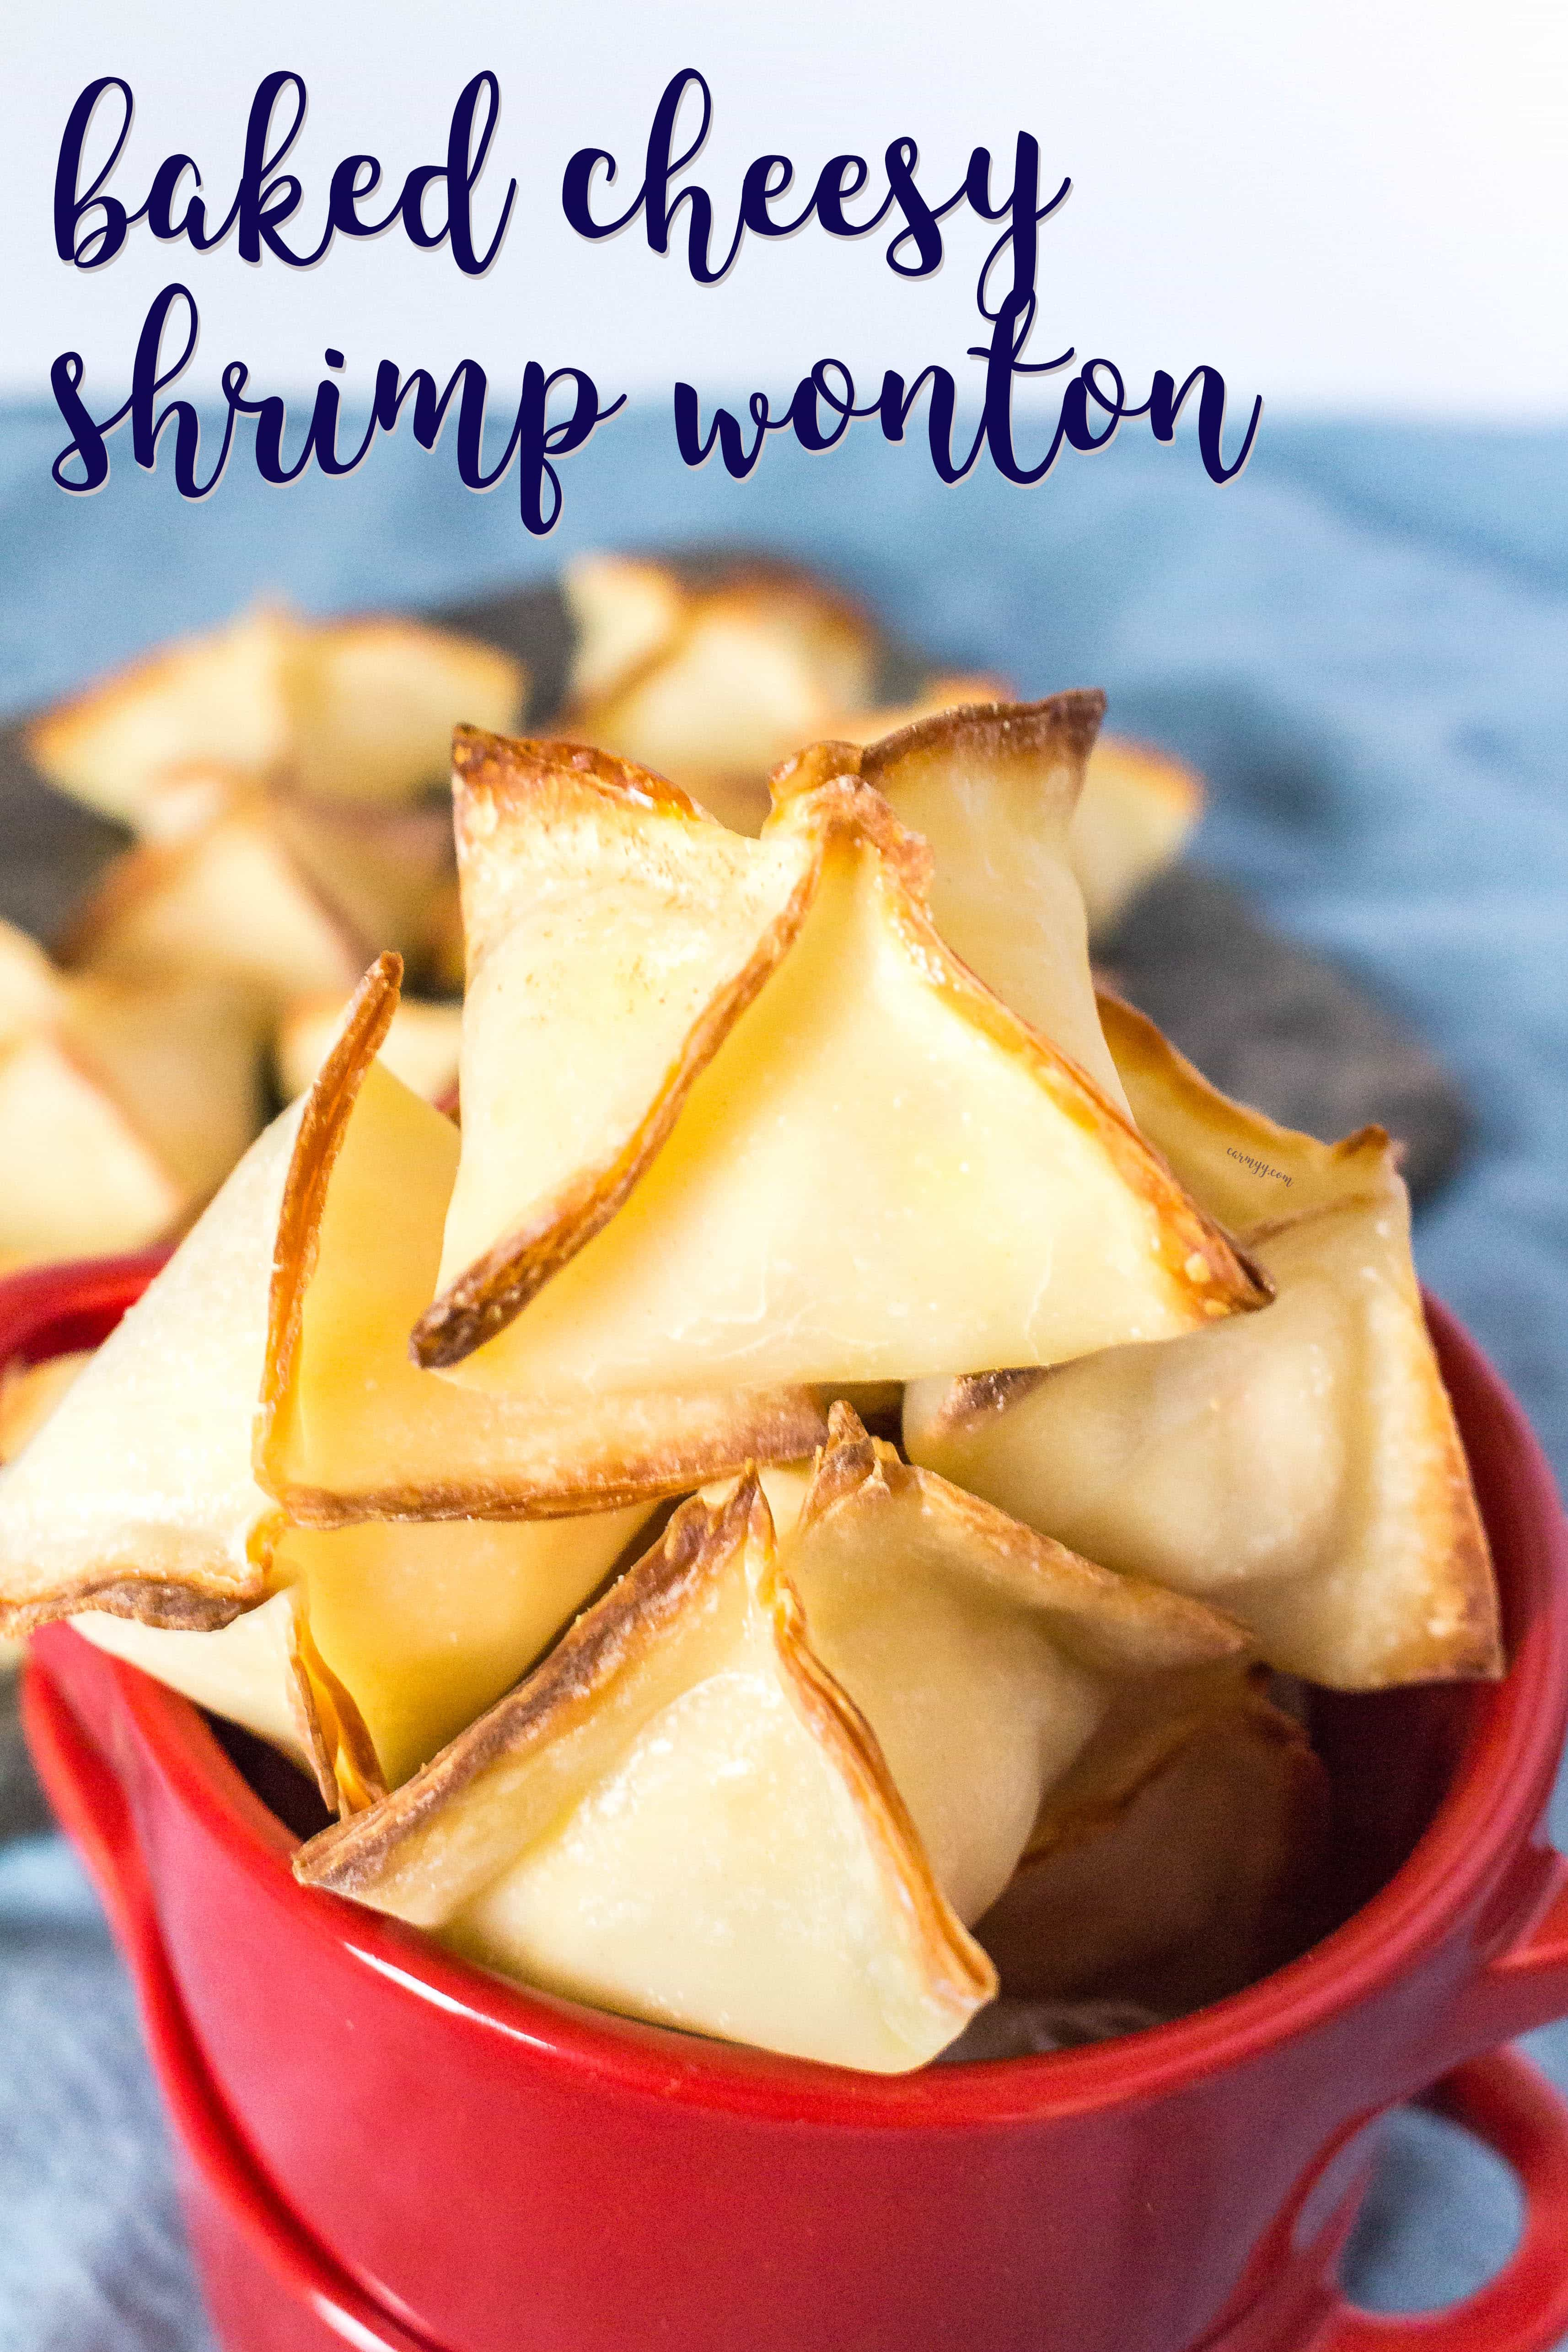 These baked cheesy shrimp wontons are easy to make and are the perfect crowd pleaser for parties or get togethers. Inspired by the deep fried shrimp wontons from sushi restaurants, this is a healthier version made by baking instead.